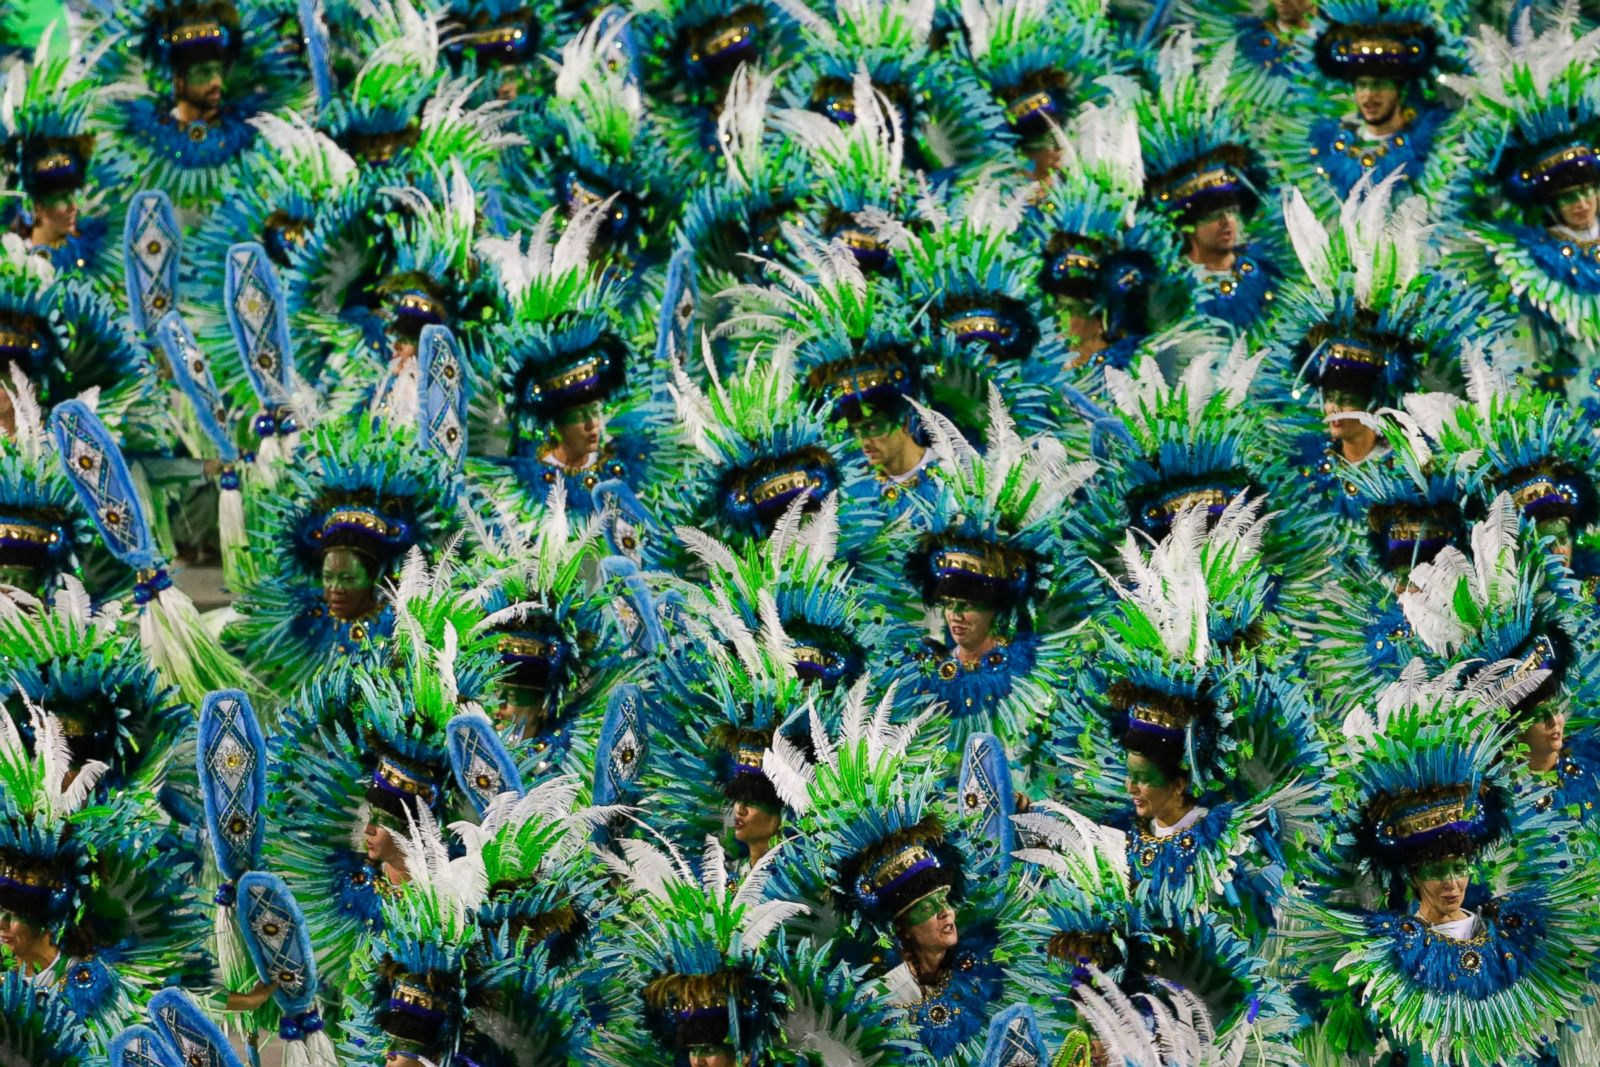 Best Images of Carnival in Brazil Photos   Image #13 - ABC ...